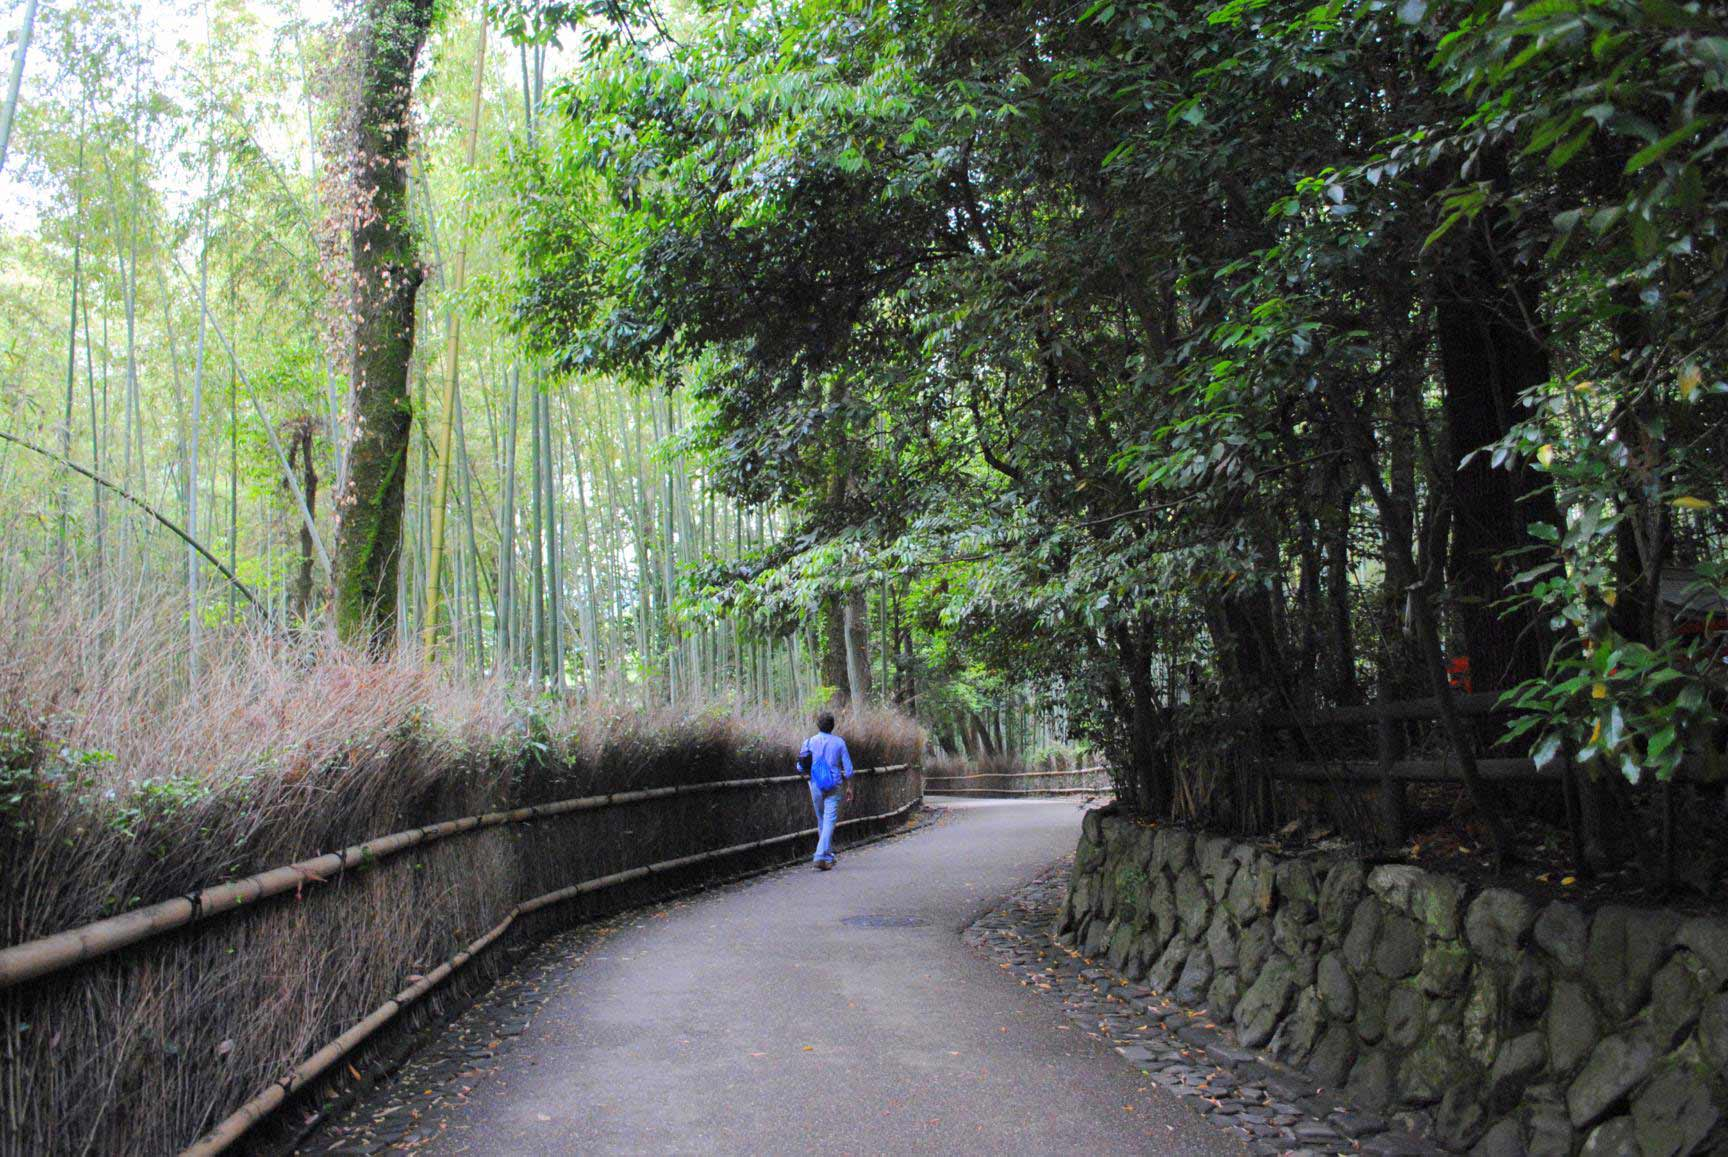 bosque-bambues-arashiyama-3